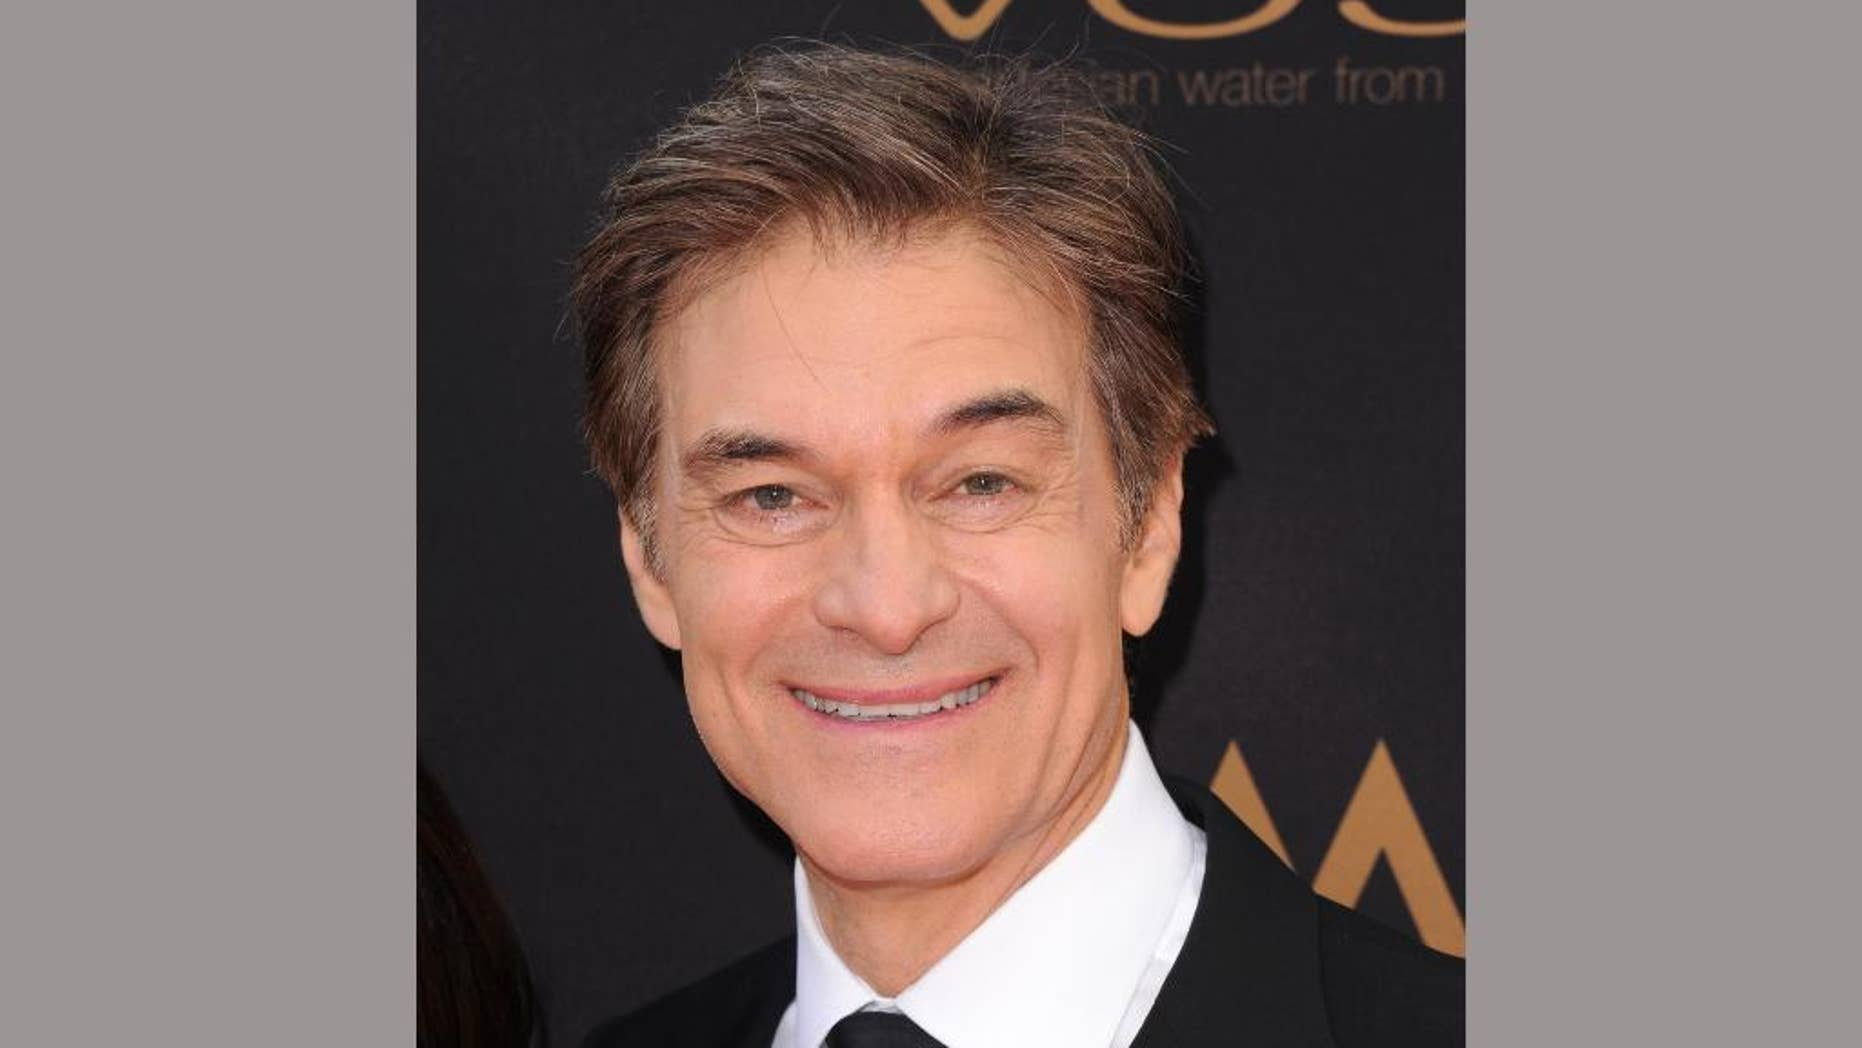 FILE - In this May 1, 2016 file photo, Dr. Mehmet Oz arrives at the 43rd annual Daytime Emmy Awards in Los Angeles. Oz is partner in a new venture called JungoTV, announced Monday, June 6, that will attempt to give immigrants online access to popular television programs from their home countries. (Photo by Richard Shotwell/Invision/AP, File)